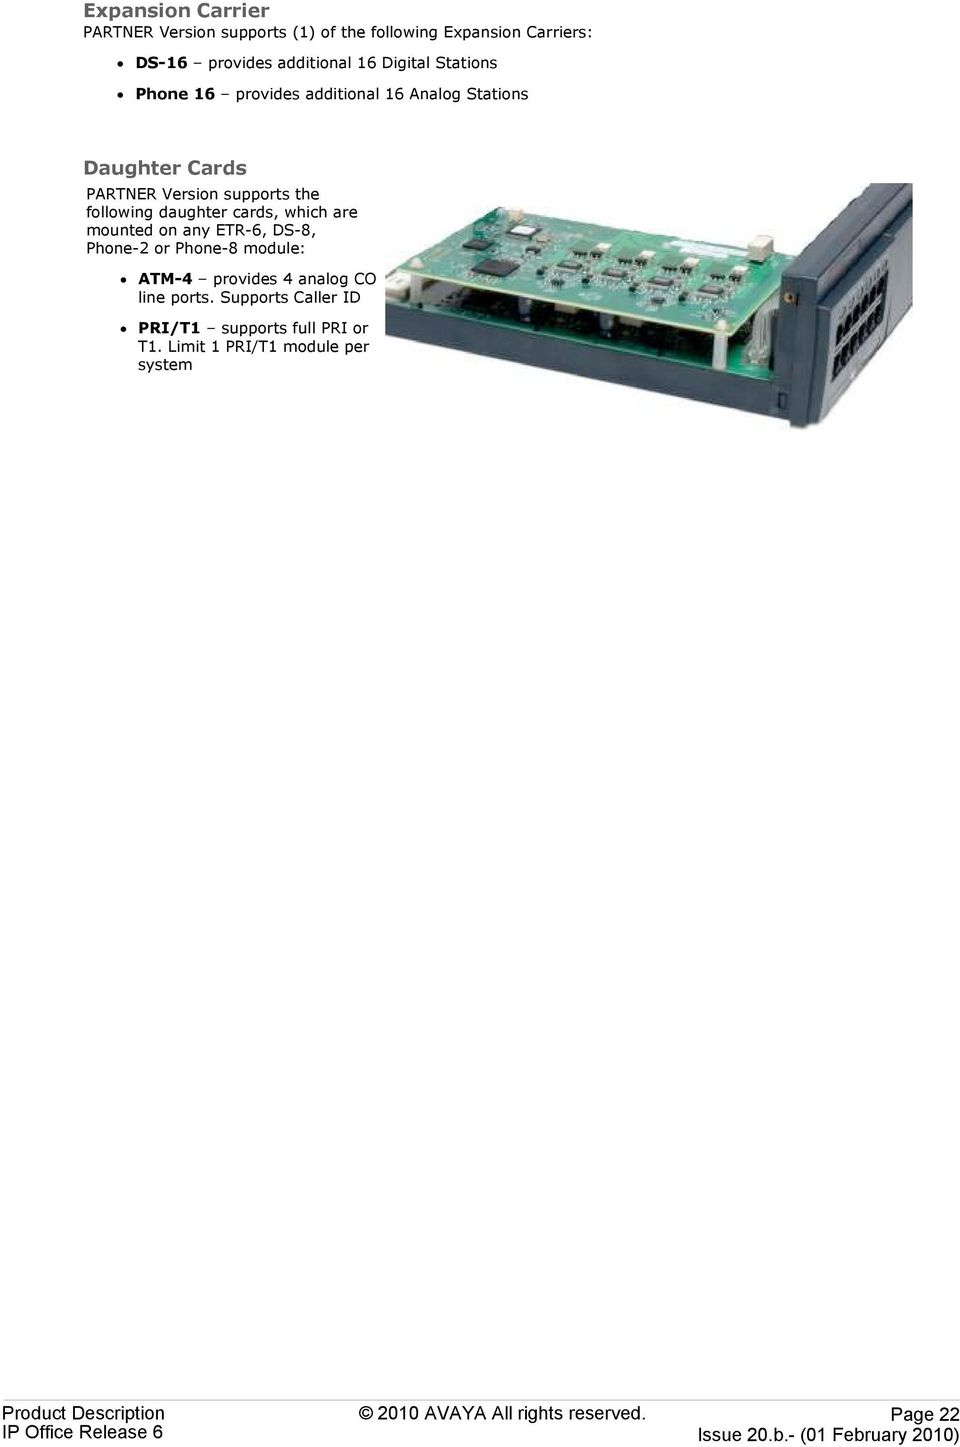 daughter cards, which are mounted on any ETR-6, DS-8, Phone-2 or Phone-8 module: ATM-4 provides 4 analog CO line ports.